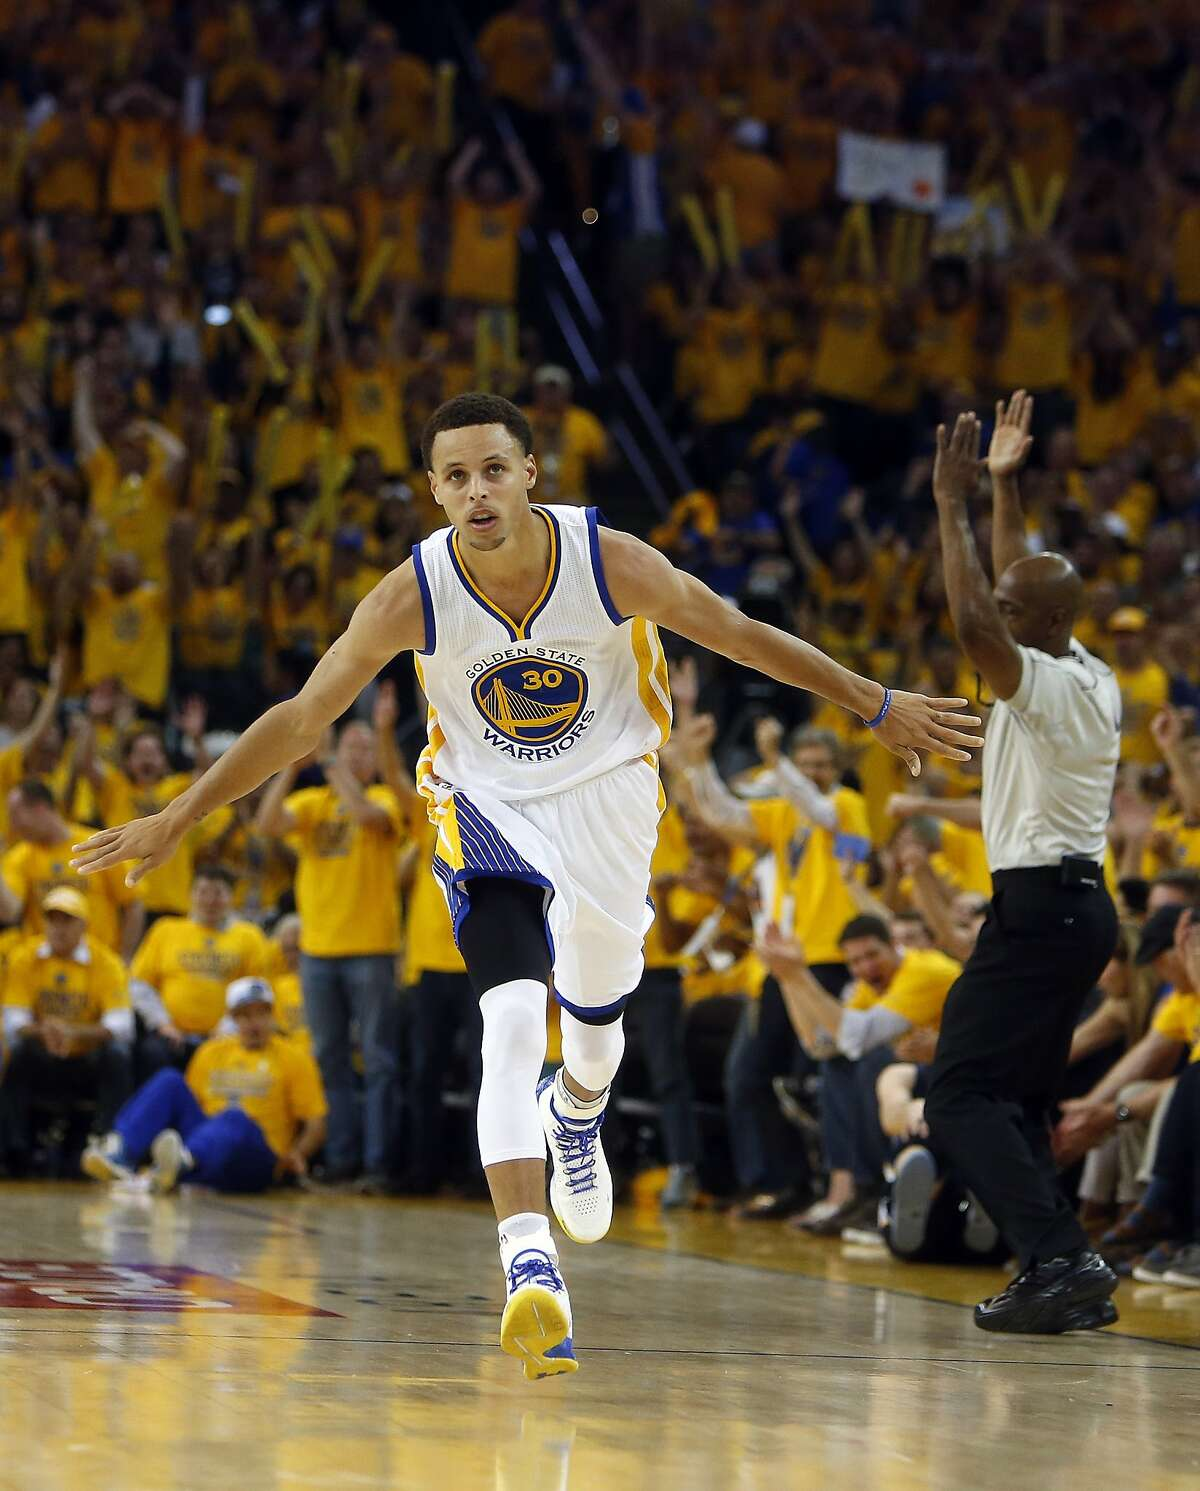 Golden State Warriors' Stephen Curry celebrates a 3-pointer in 3rd quarter of Warriors' 101-86 win over Memphis Grizzlies during Game 1 of NBA Playoffs' Western Conference Semifinals in Oakland, Calif., on Sunday, May 3, 2015.